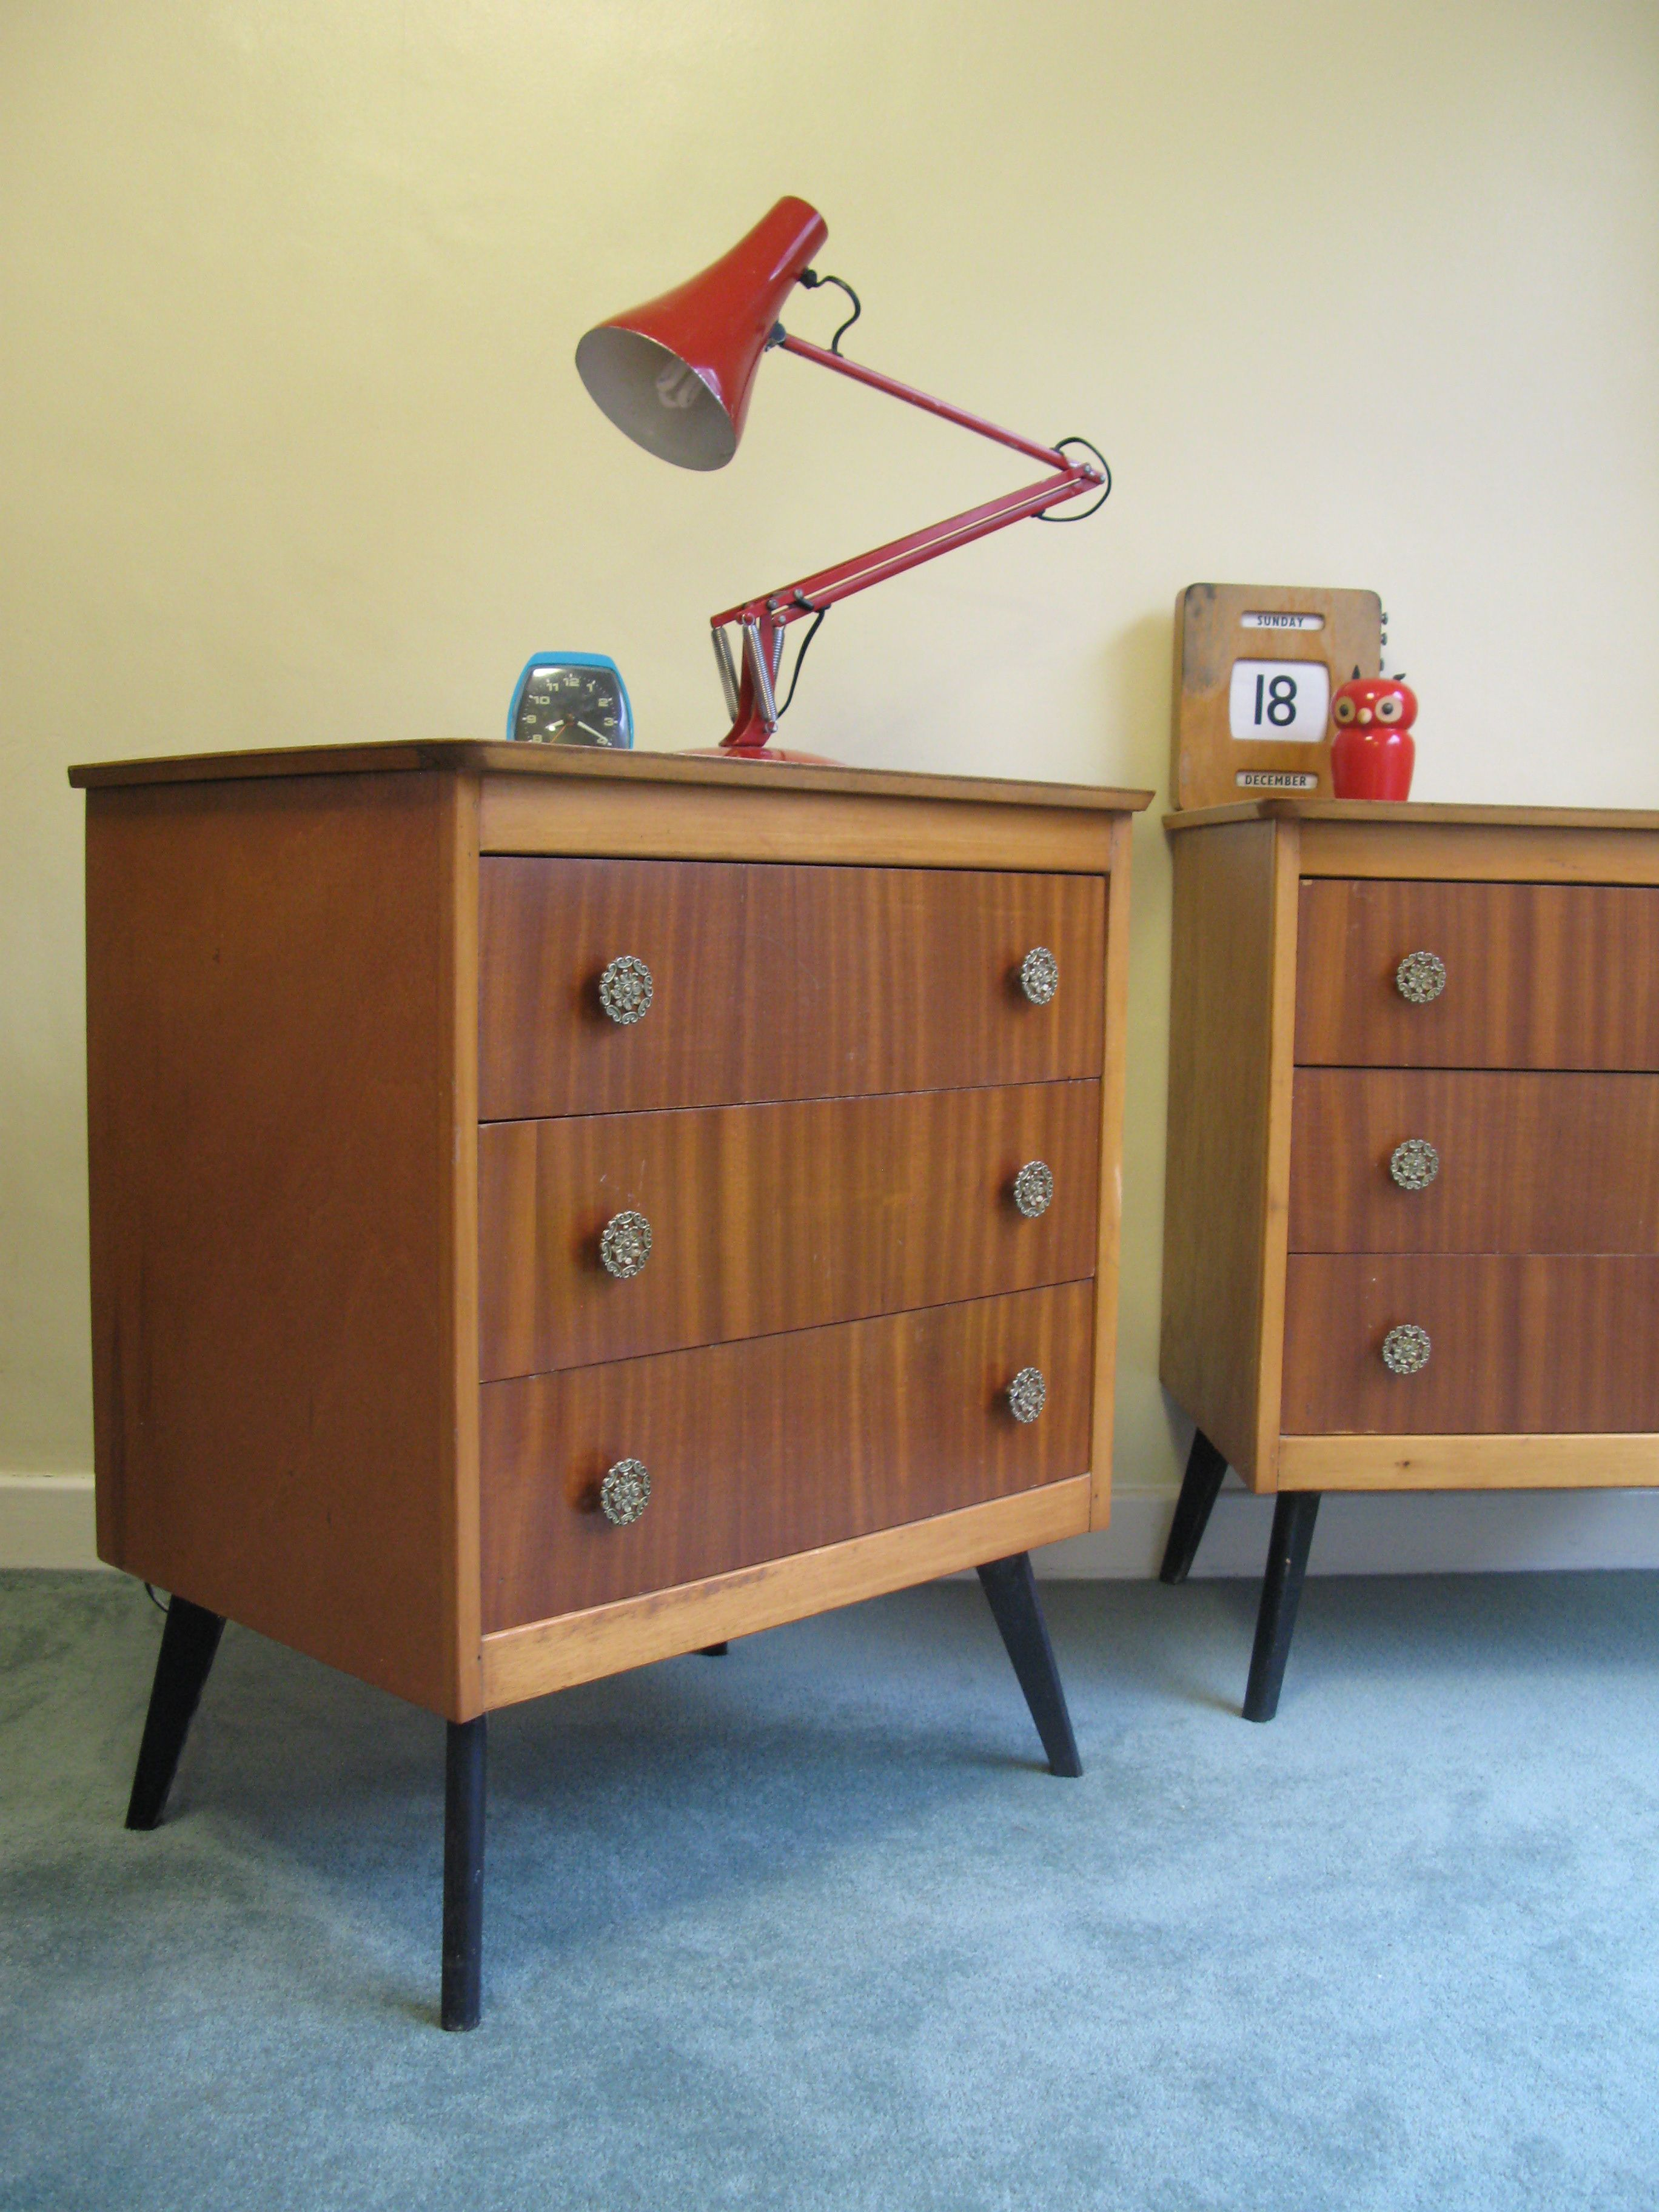 Retro 1950s Great Idea For An Ikea Rast Hack Chest Of Drawers Pinterest